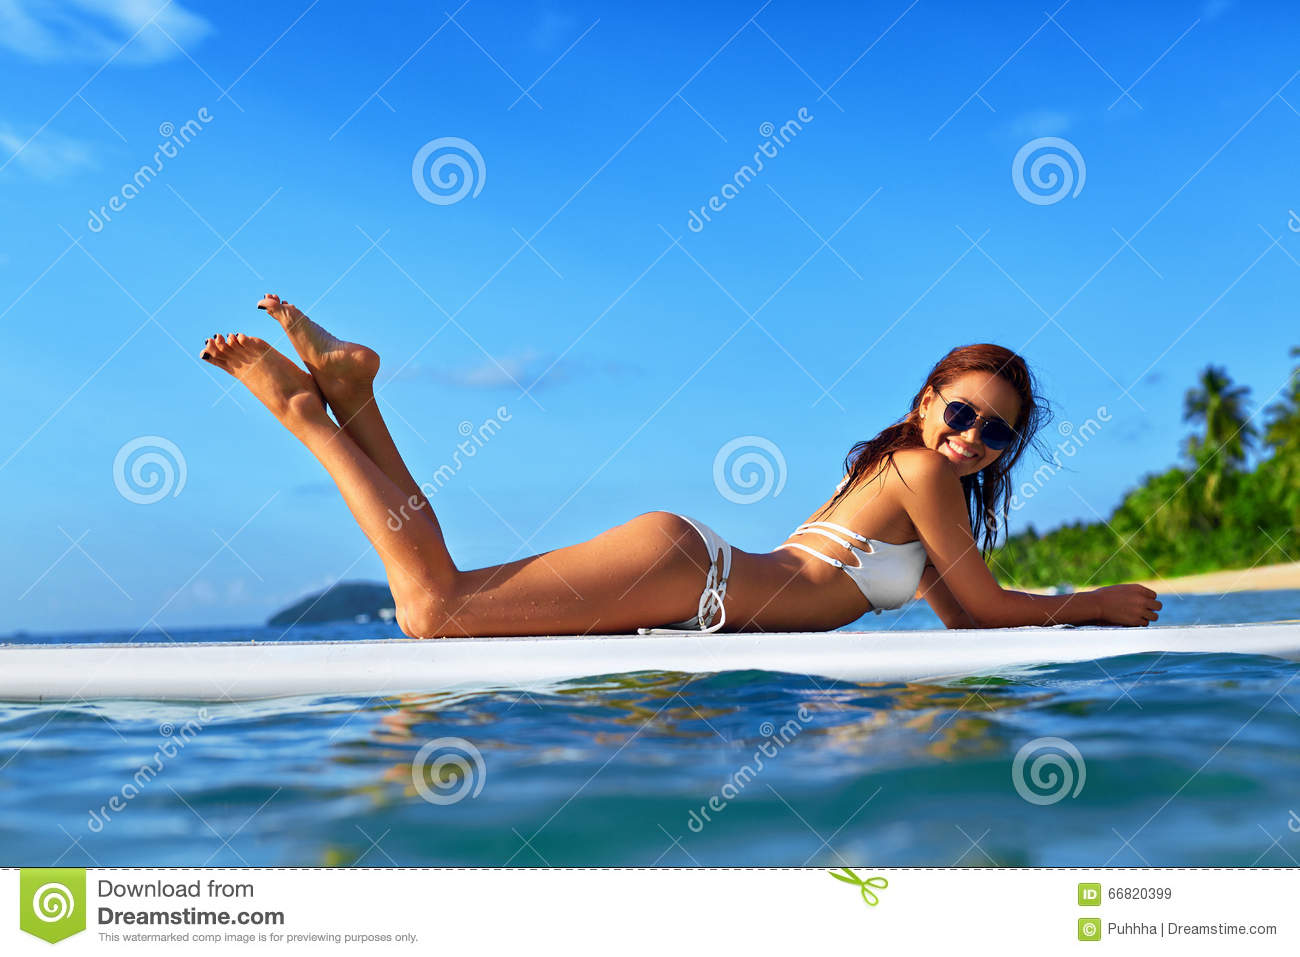 Vacation Travel. Summer Relax. Healthy Woman In Water. Recreational Sports.